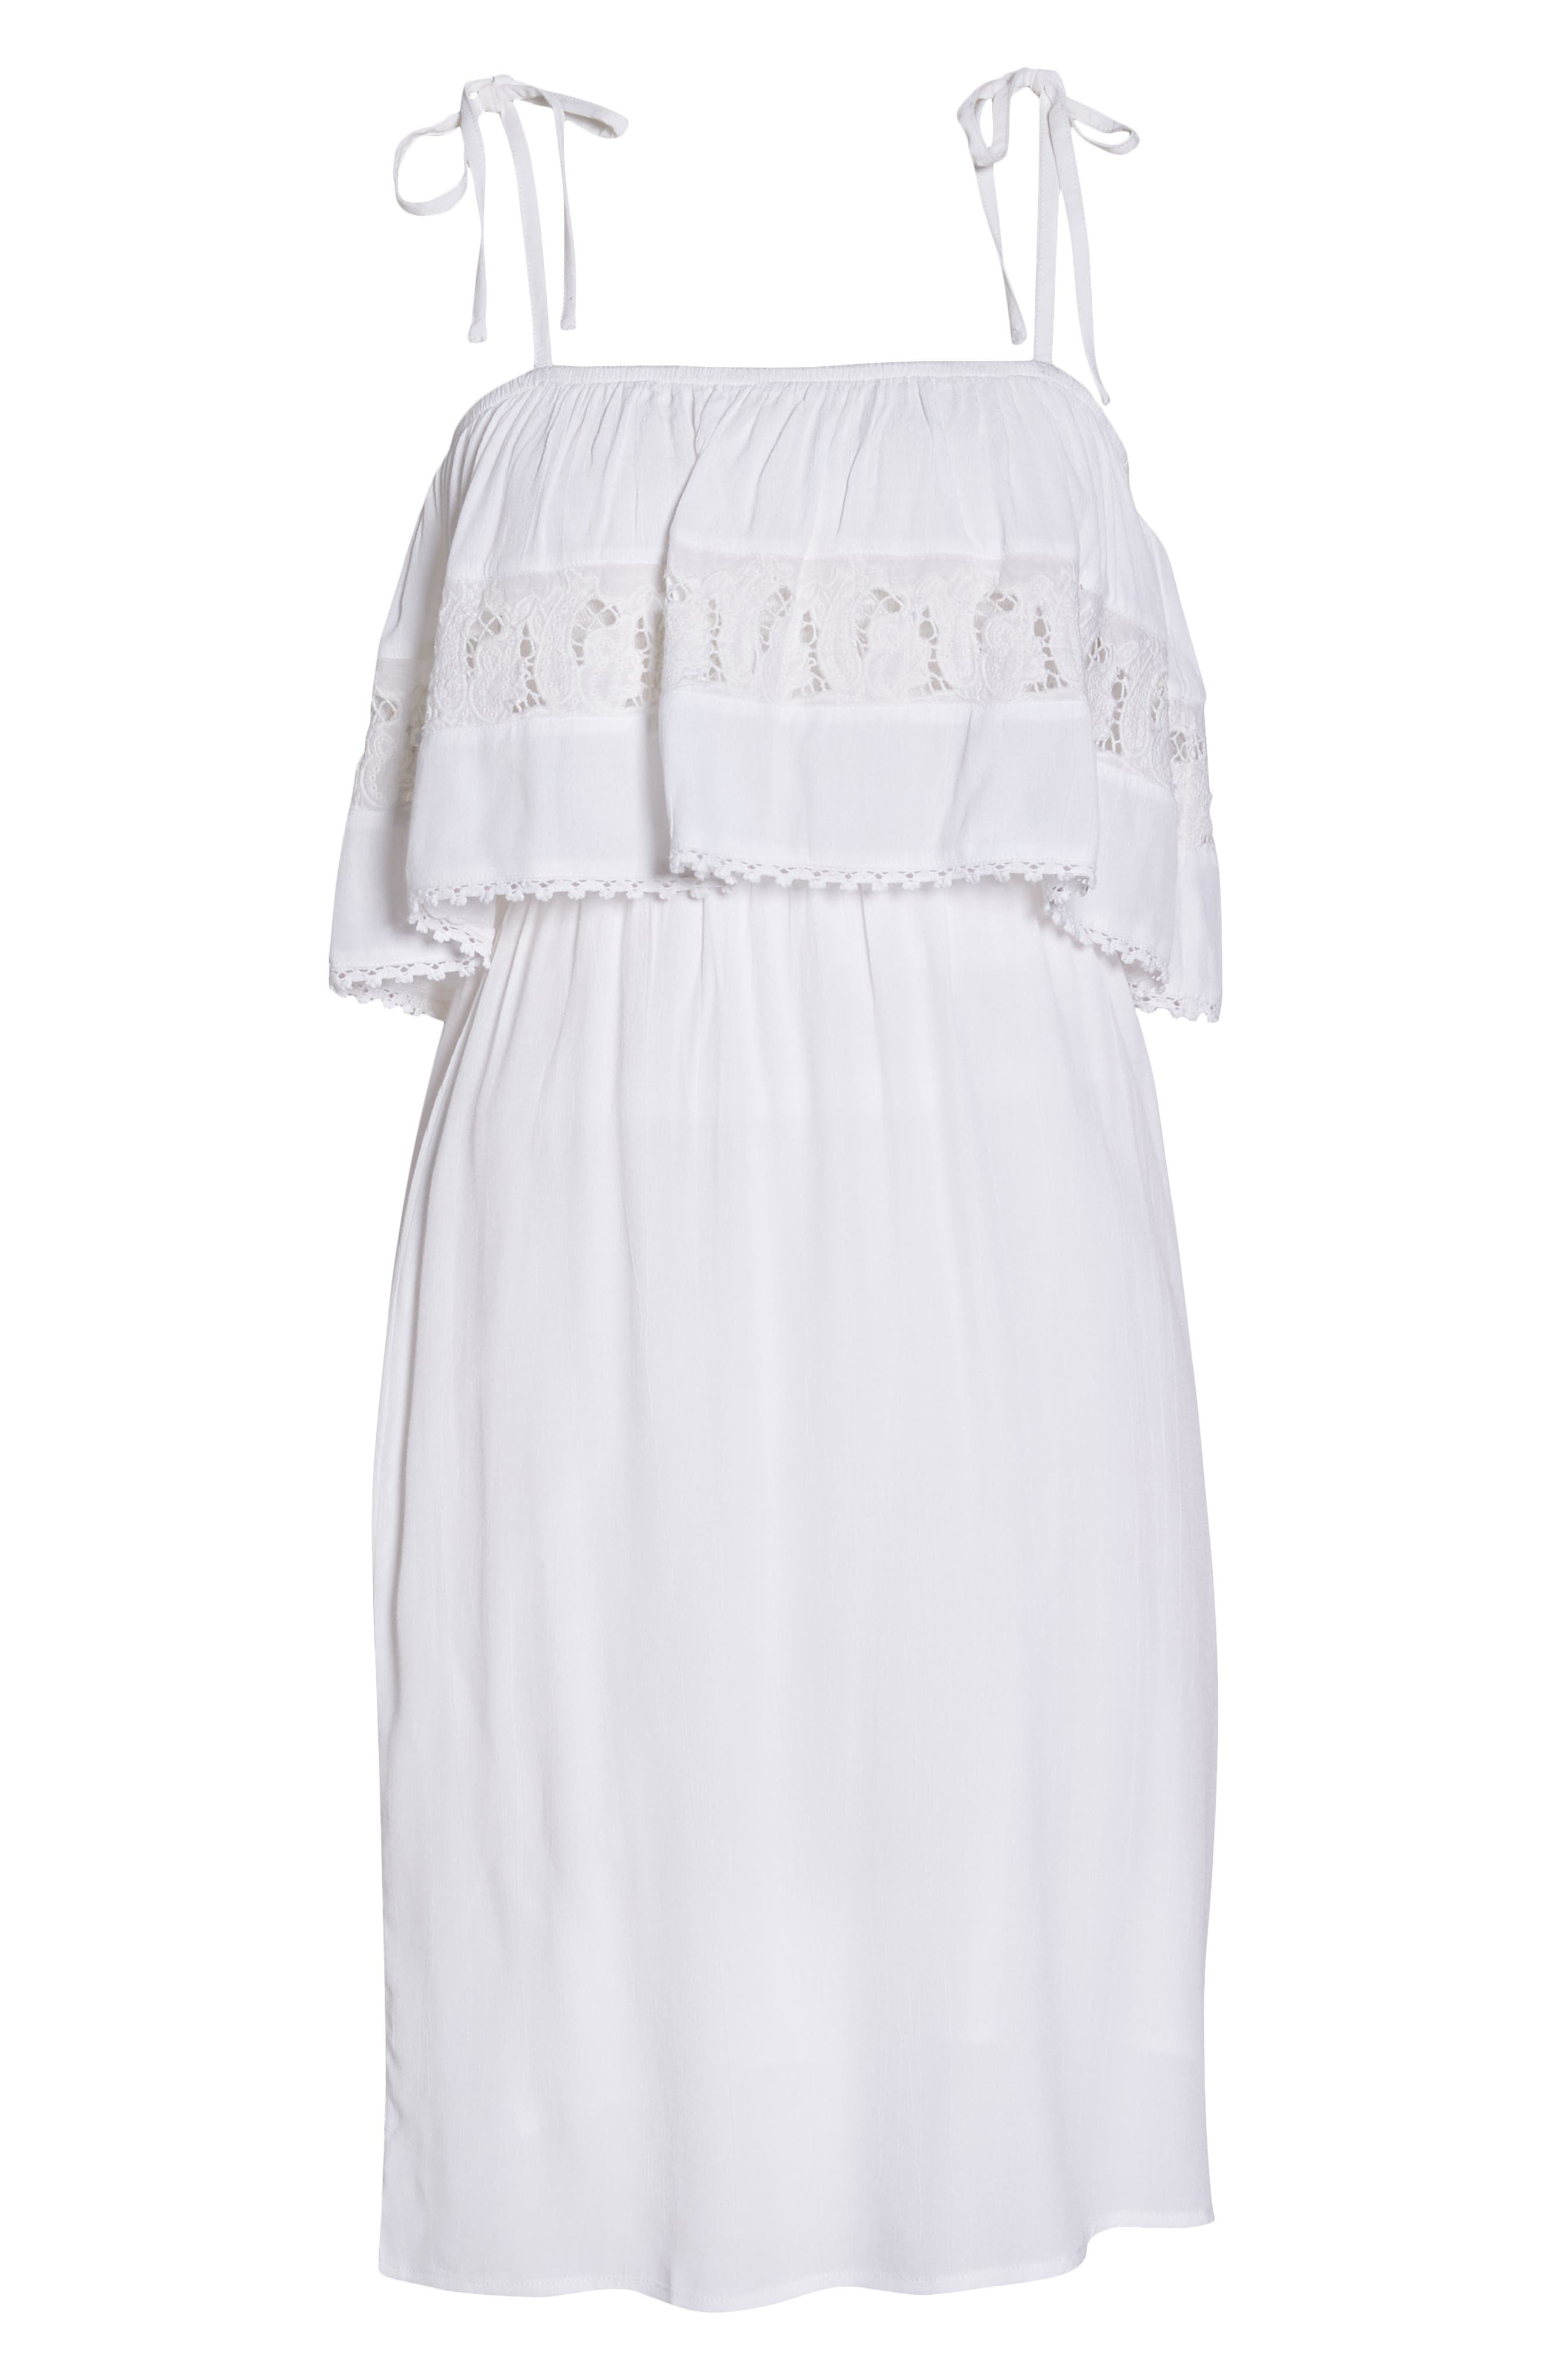 Jaclyn Cover-Up Dress,                             Alternate thumbnail 6, color,                             100